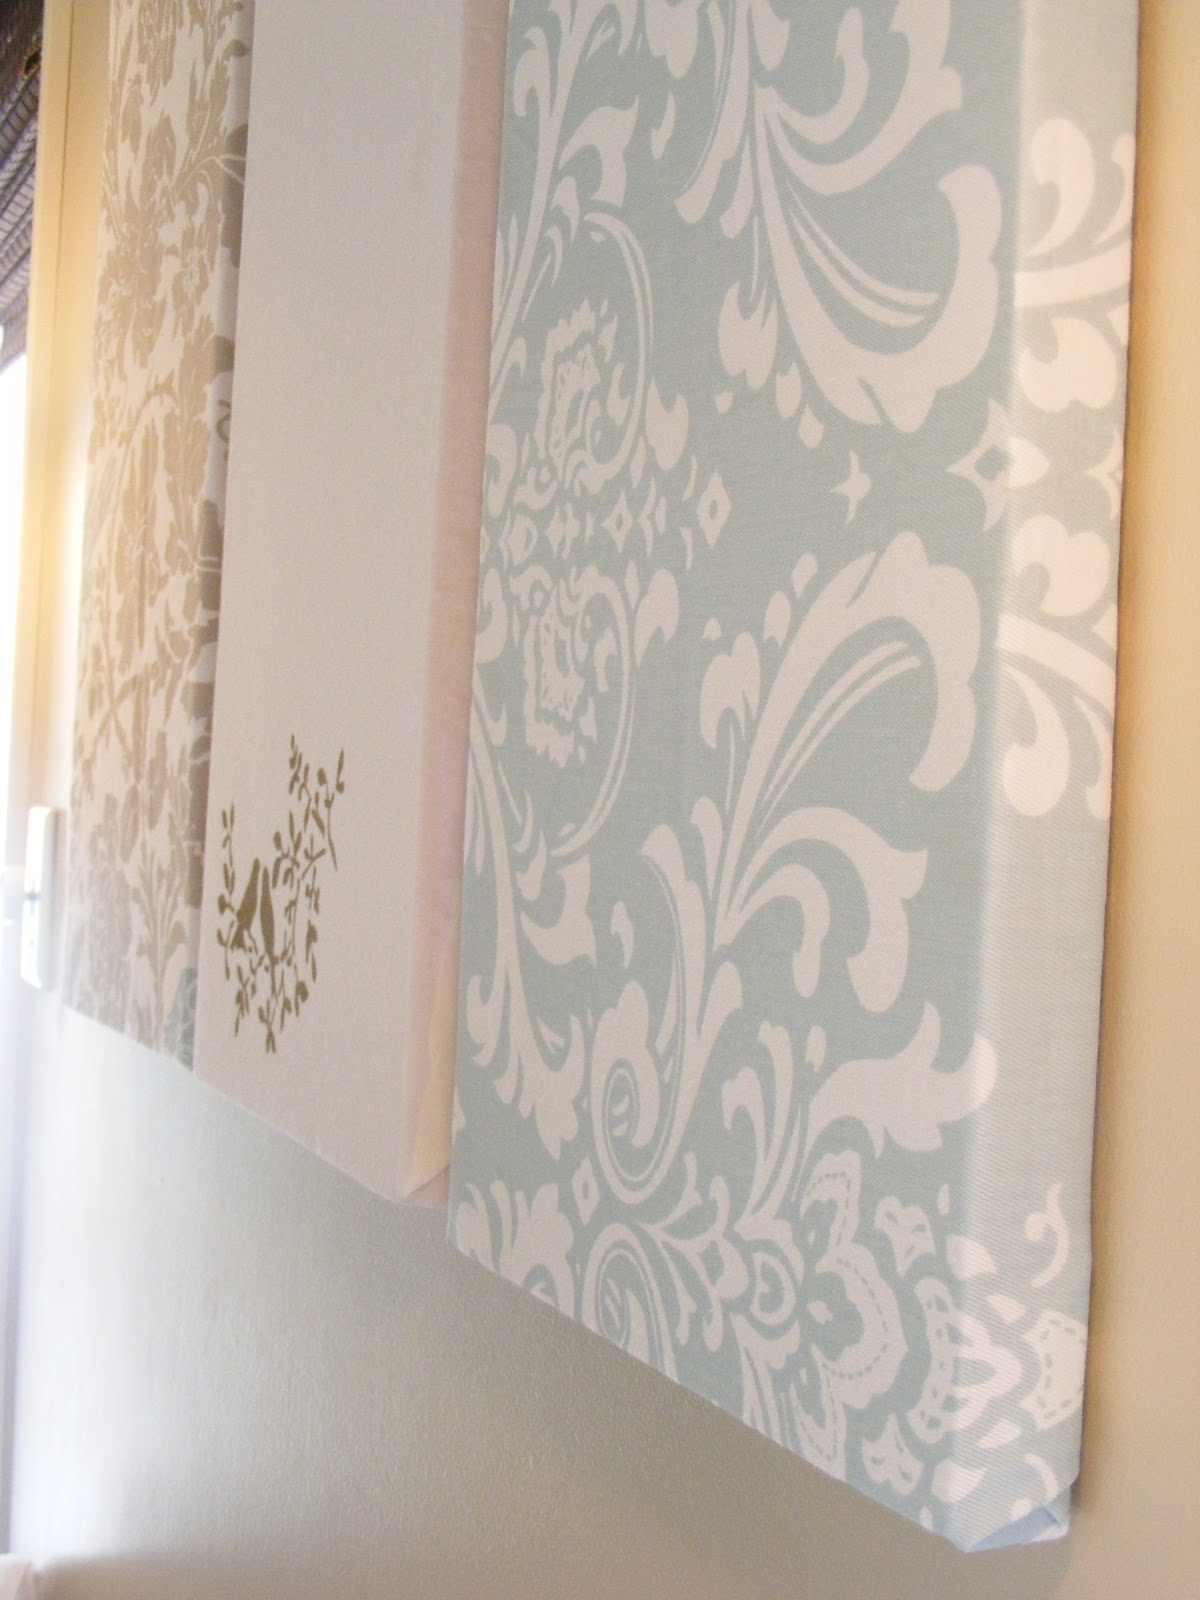 The Complete Guide To Imperfect Homemaking: Simple, Thrifty Diy Art Intended For Newest Damask Fabric Wall Art (Gallery 5 of 15)